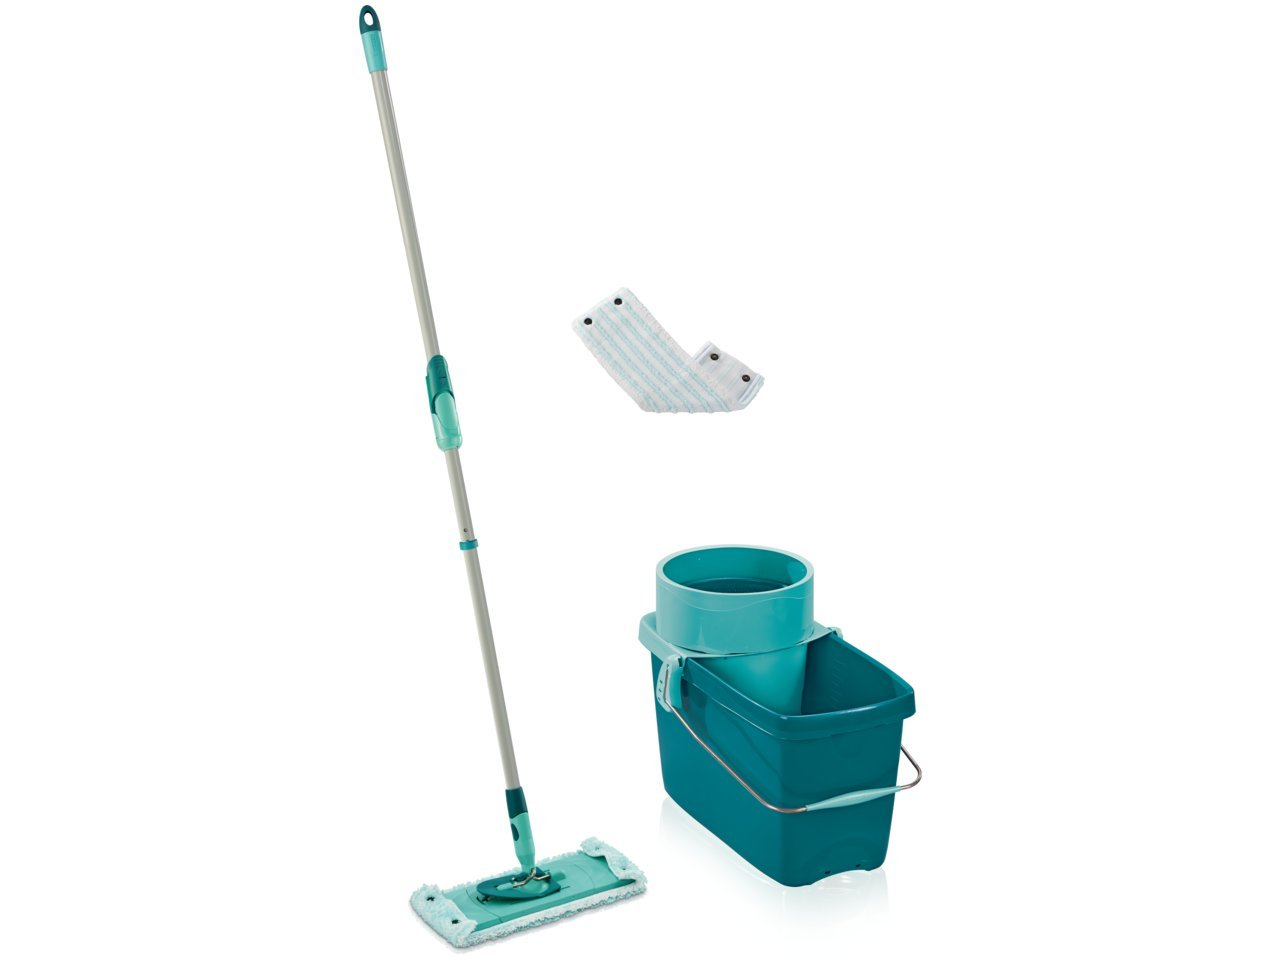 Amazon.com: Leifheit Mop Set with Clean Twist System Evo: Kitchen ...